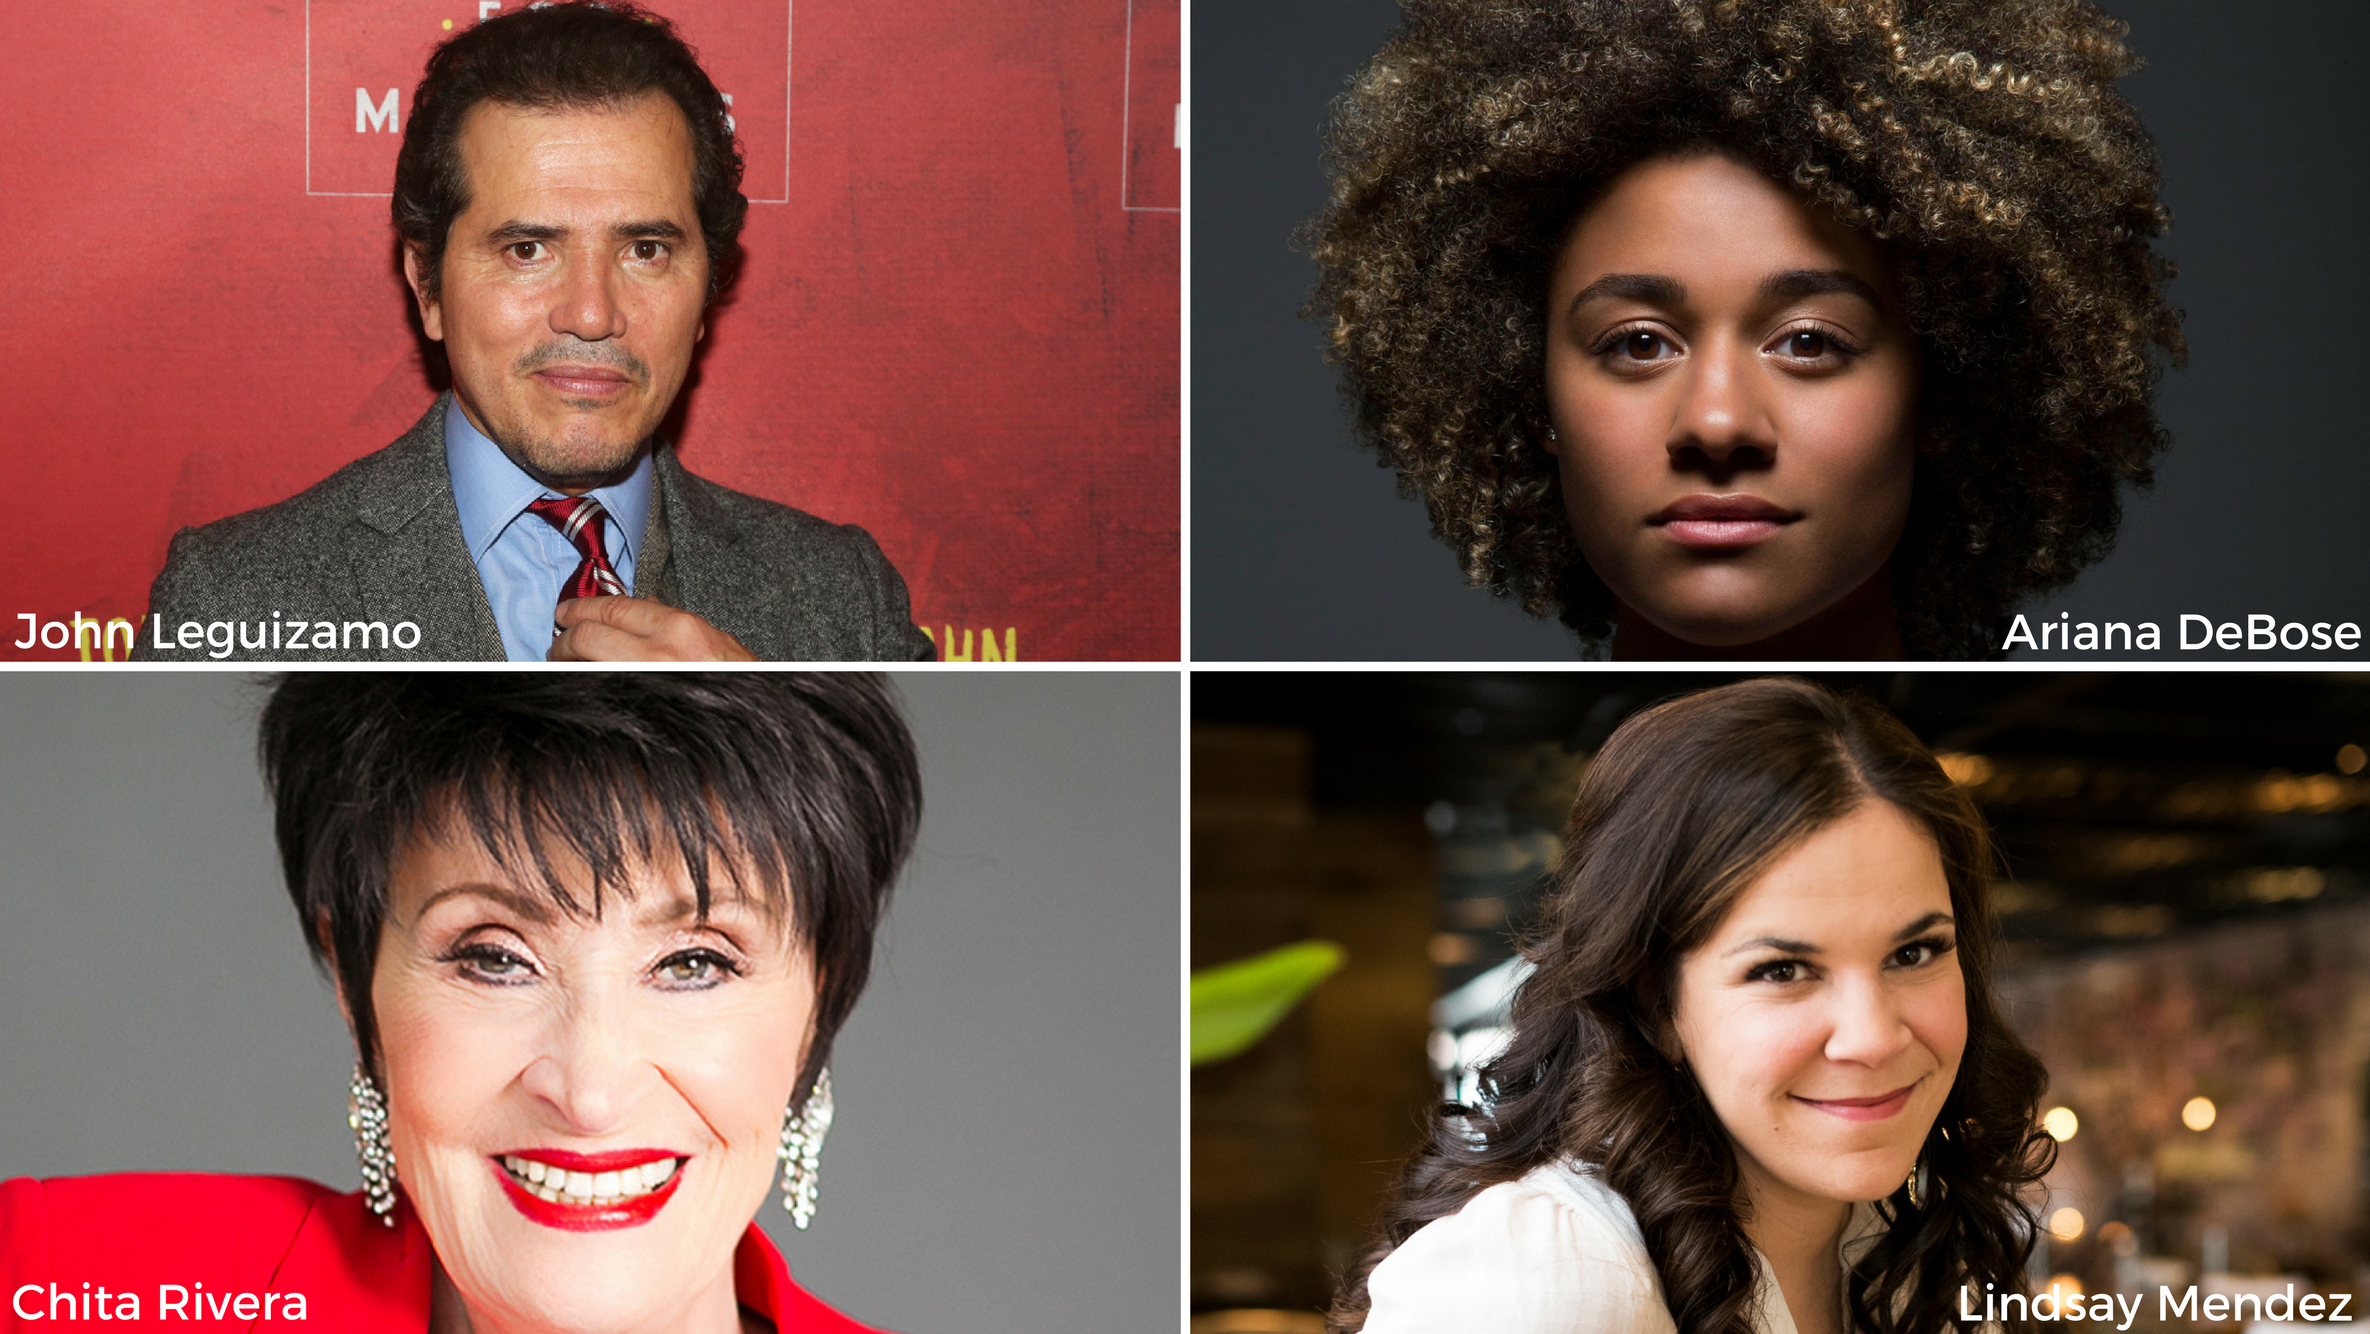 Latinx's John Leguizamo, Ariana DeBose, Lindsay Mendez and Chita Rivera Selected For 2018 Tony Awards